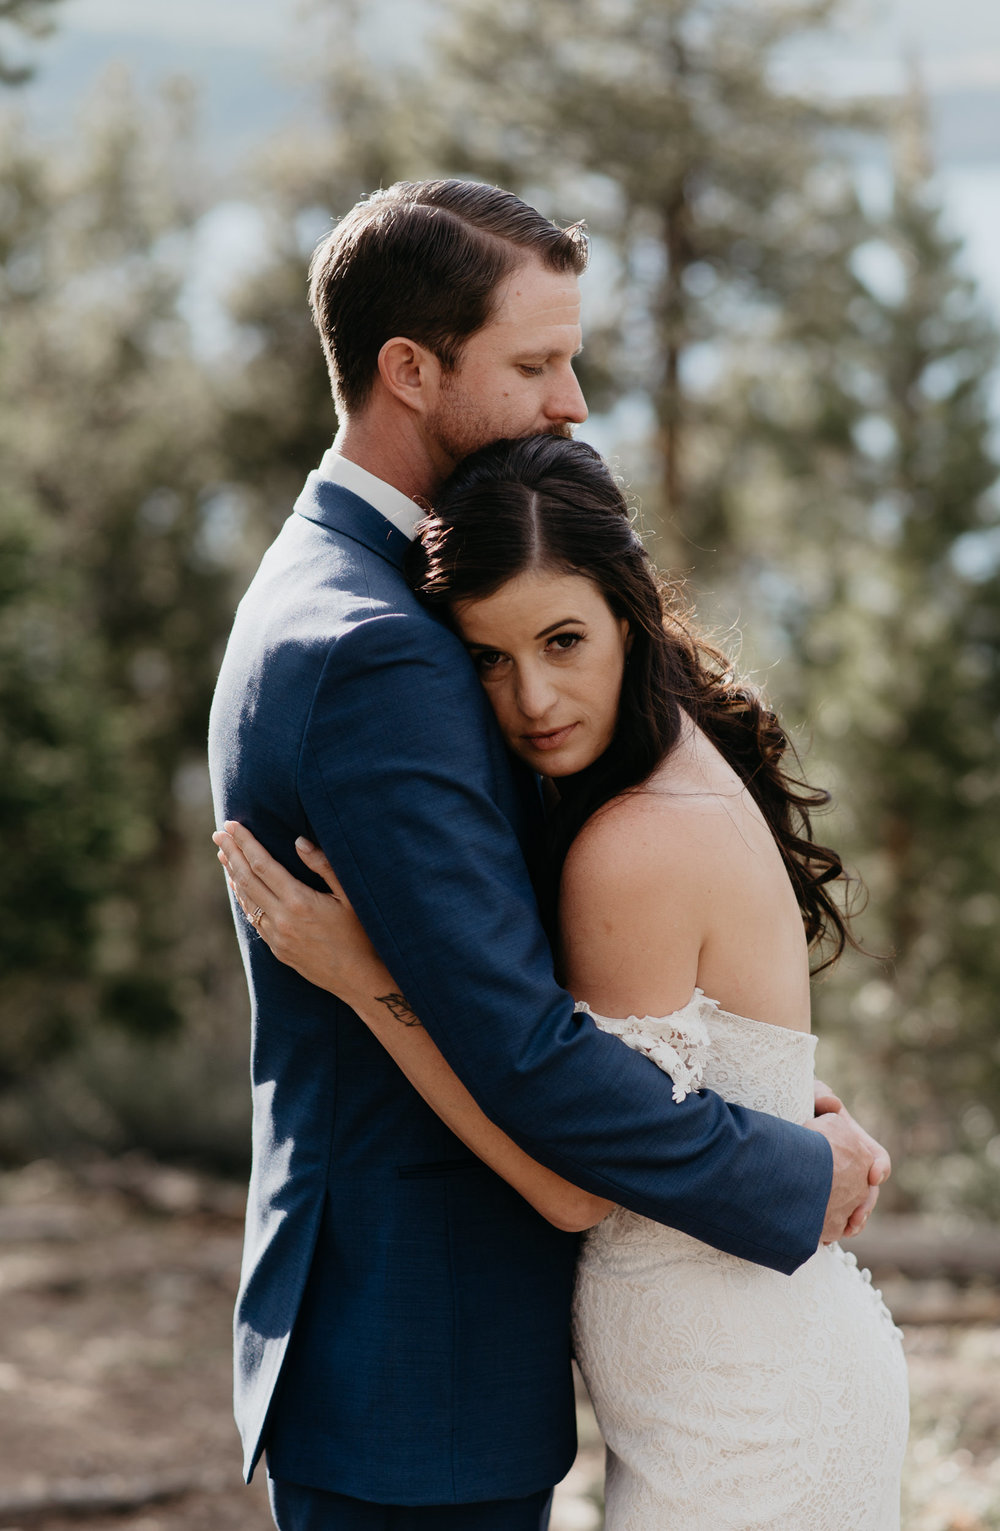 Wedding in Colorado at Sapphire Point. Colorado wedding photographer.